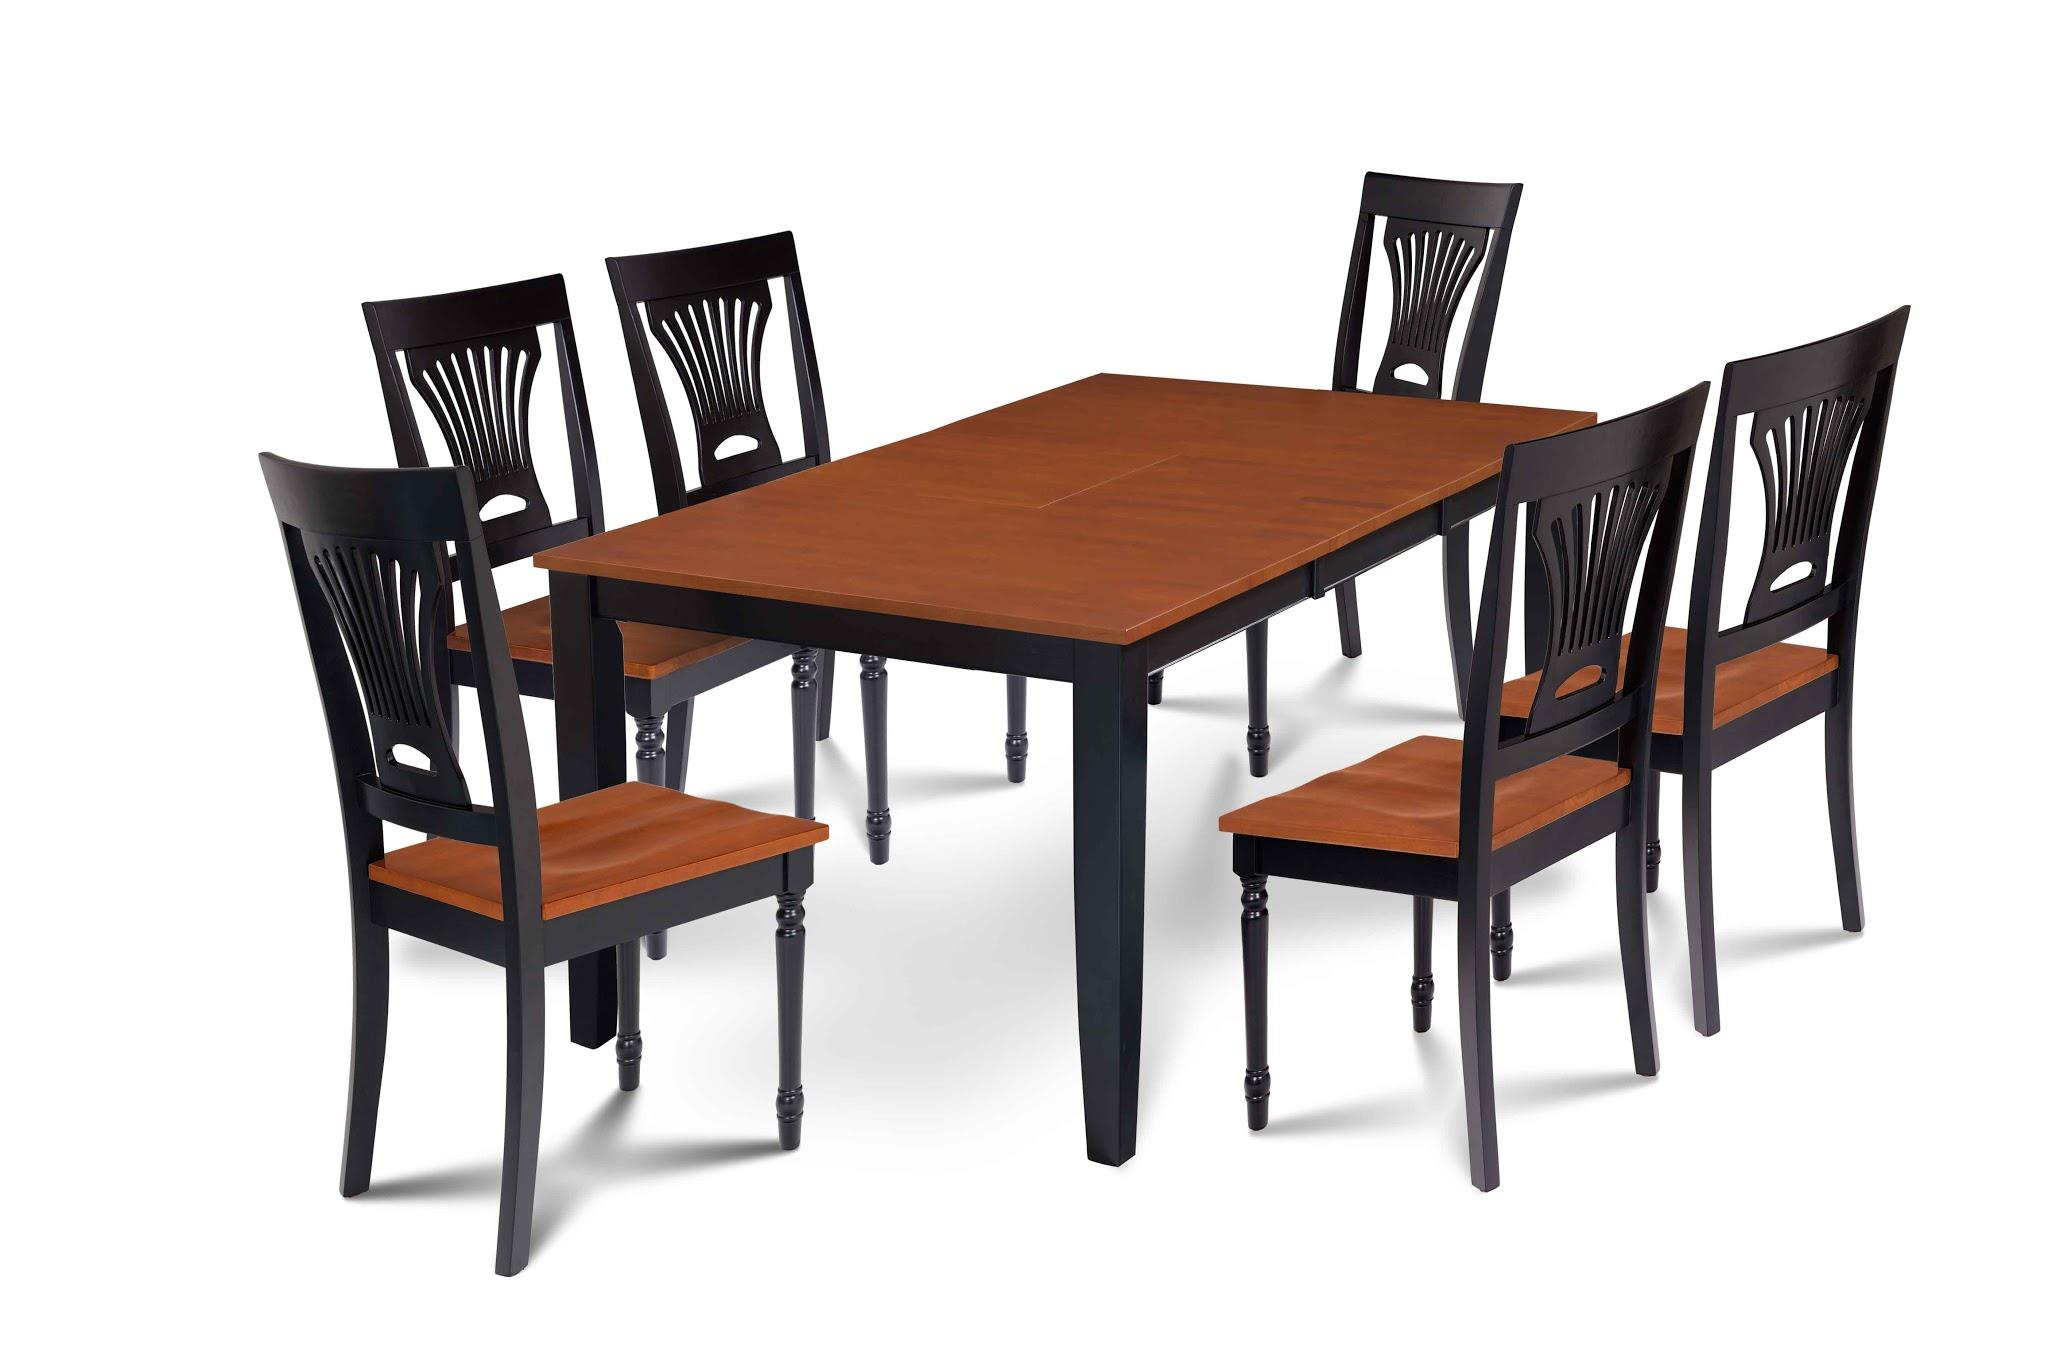 7 Piece Dining Room Set Table With A Butterfly Leaf And 6 Dining Chairs,  Black/Cherry, Rectangular